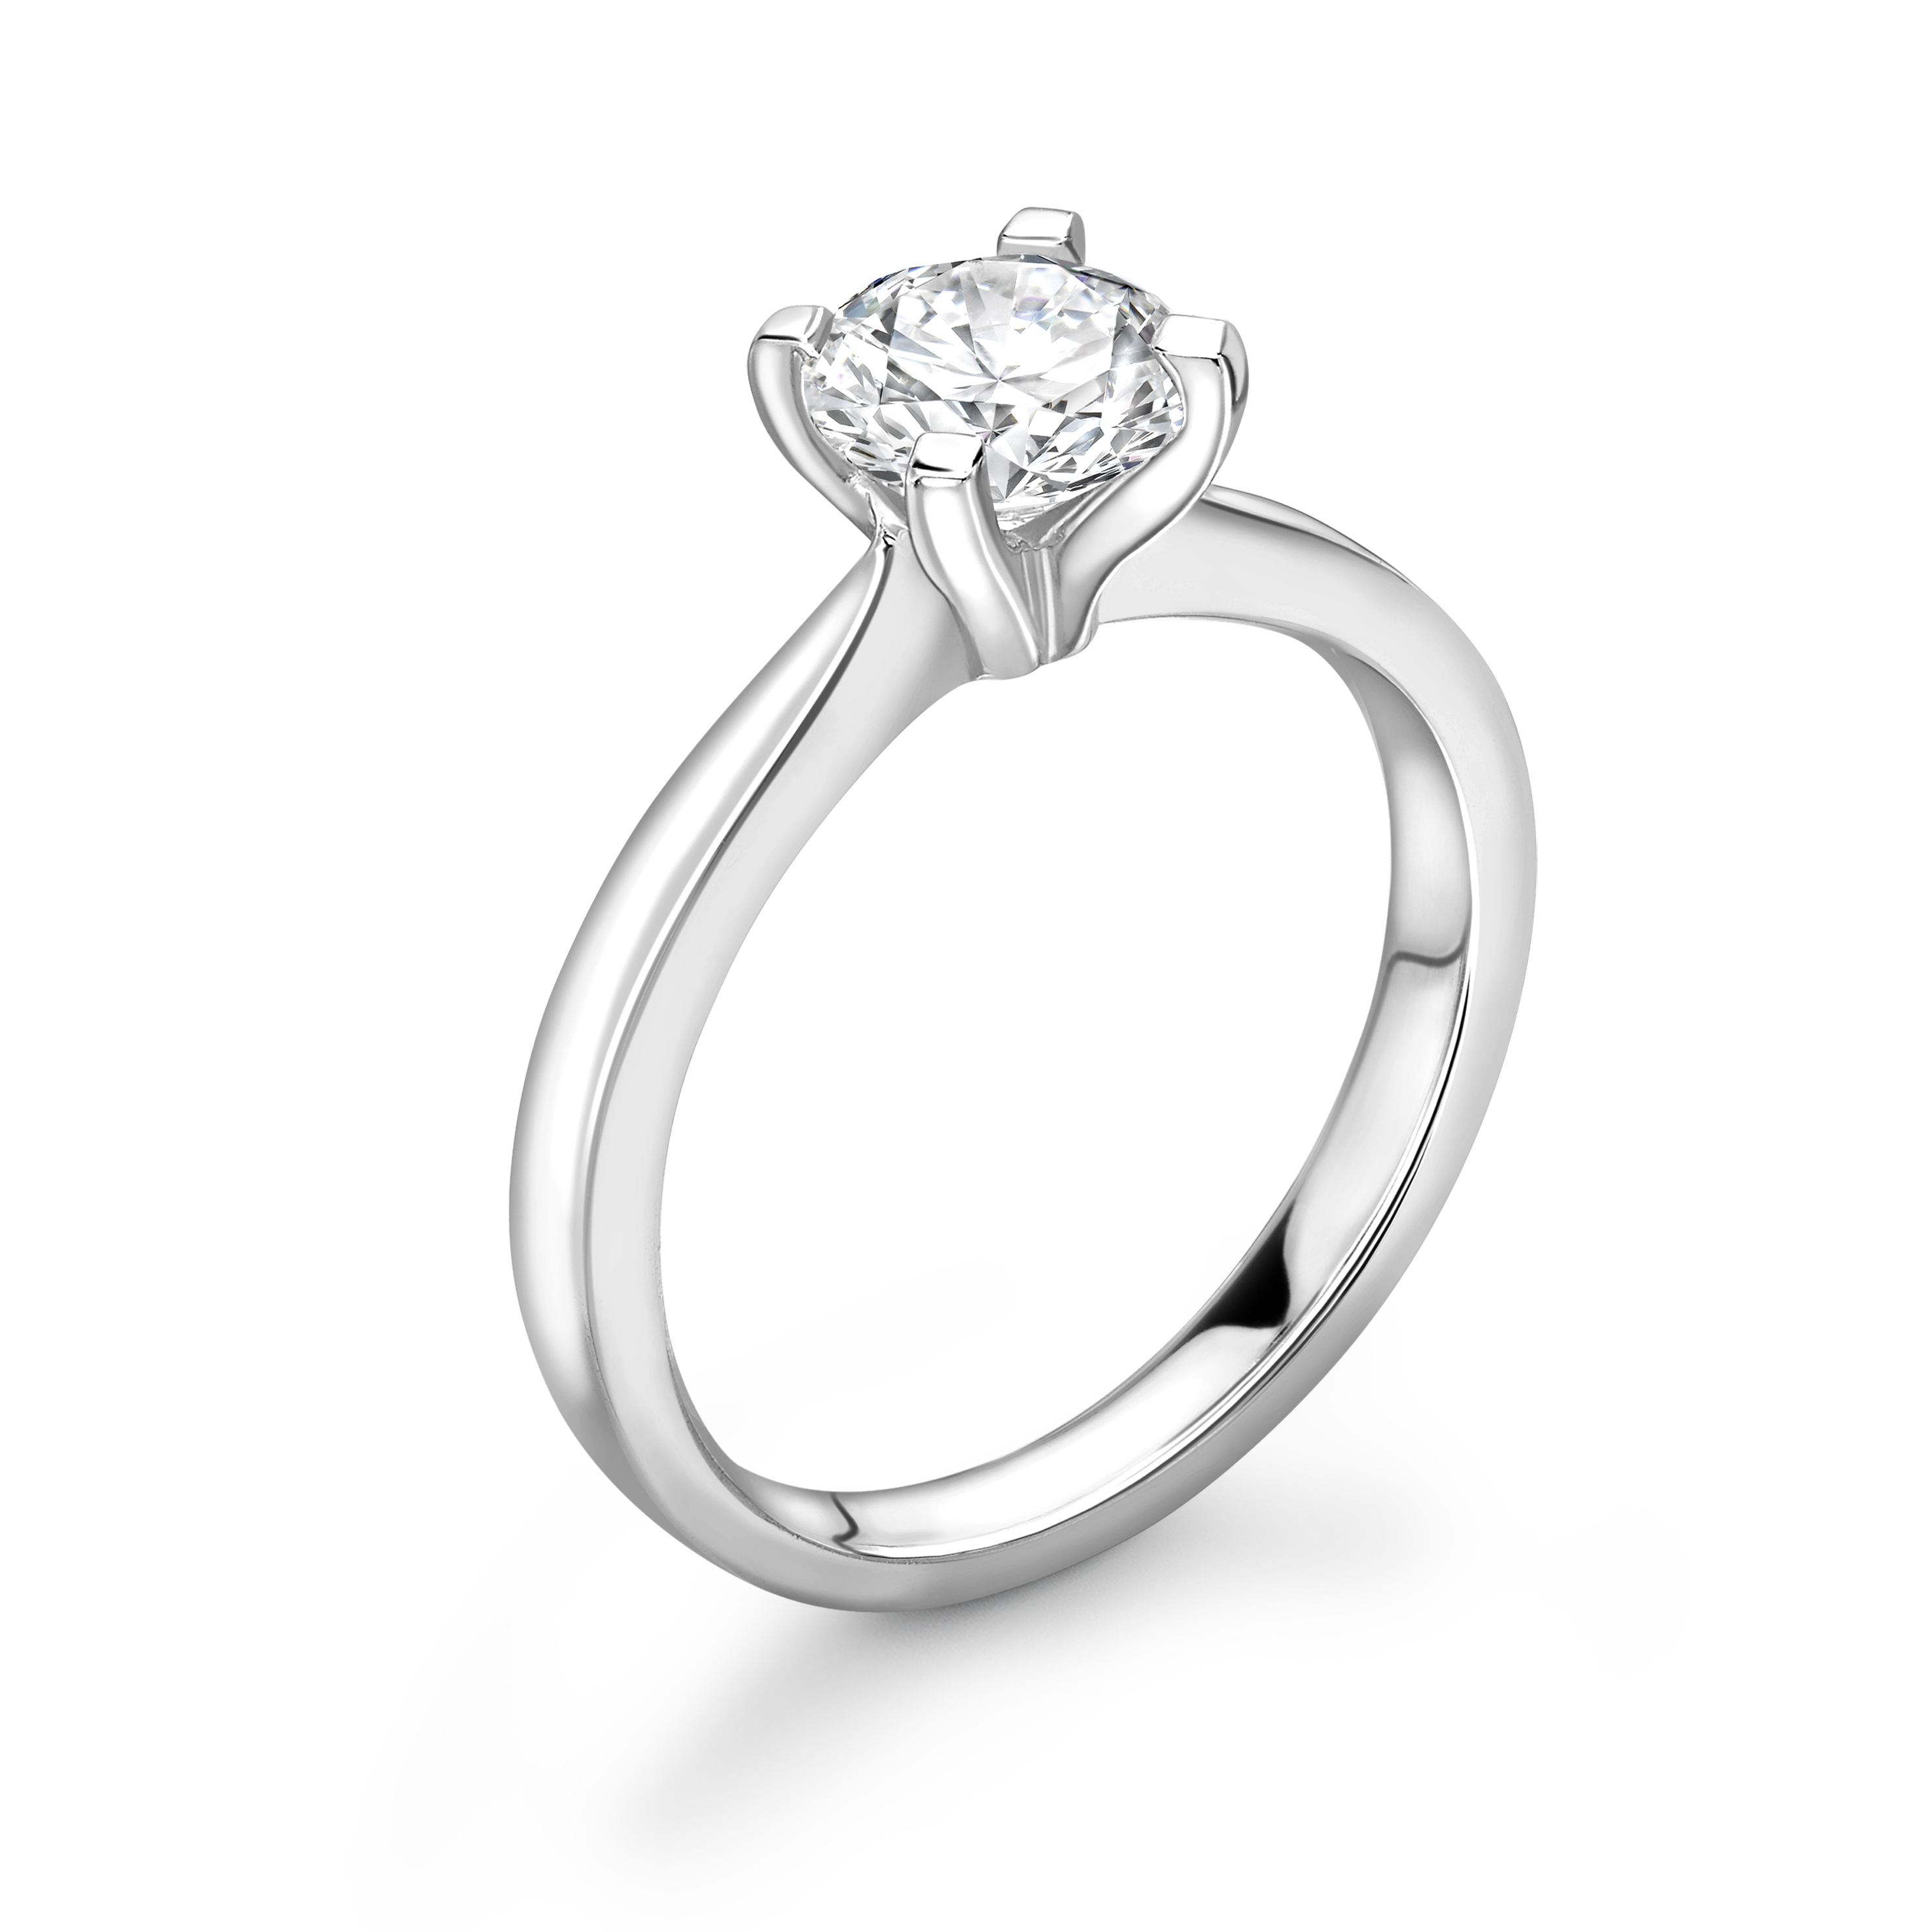 Open Setting 4 Claw solitaire Diamond Engagement Rings UK